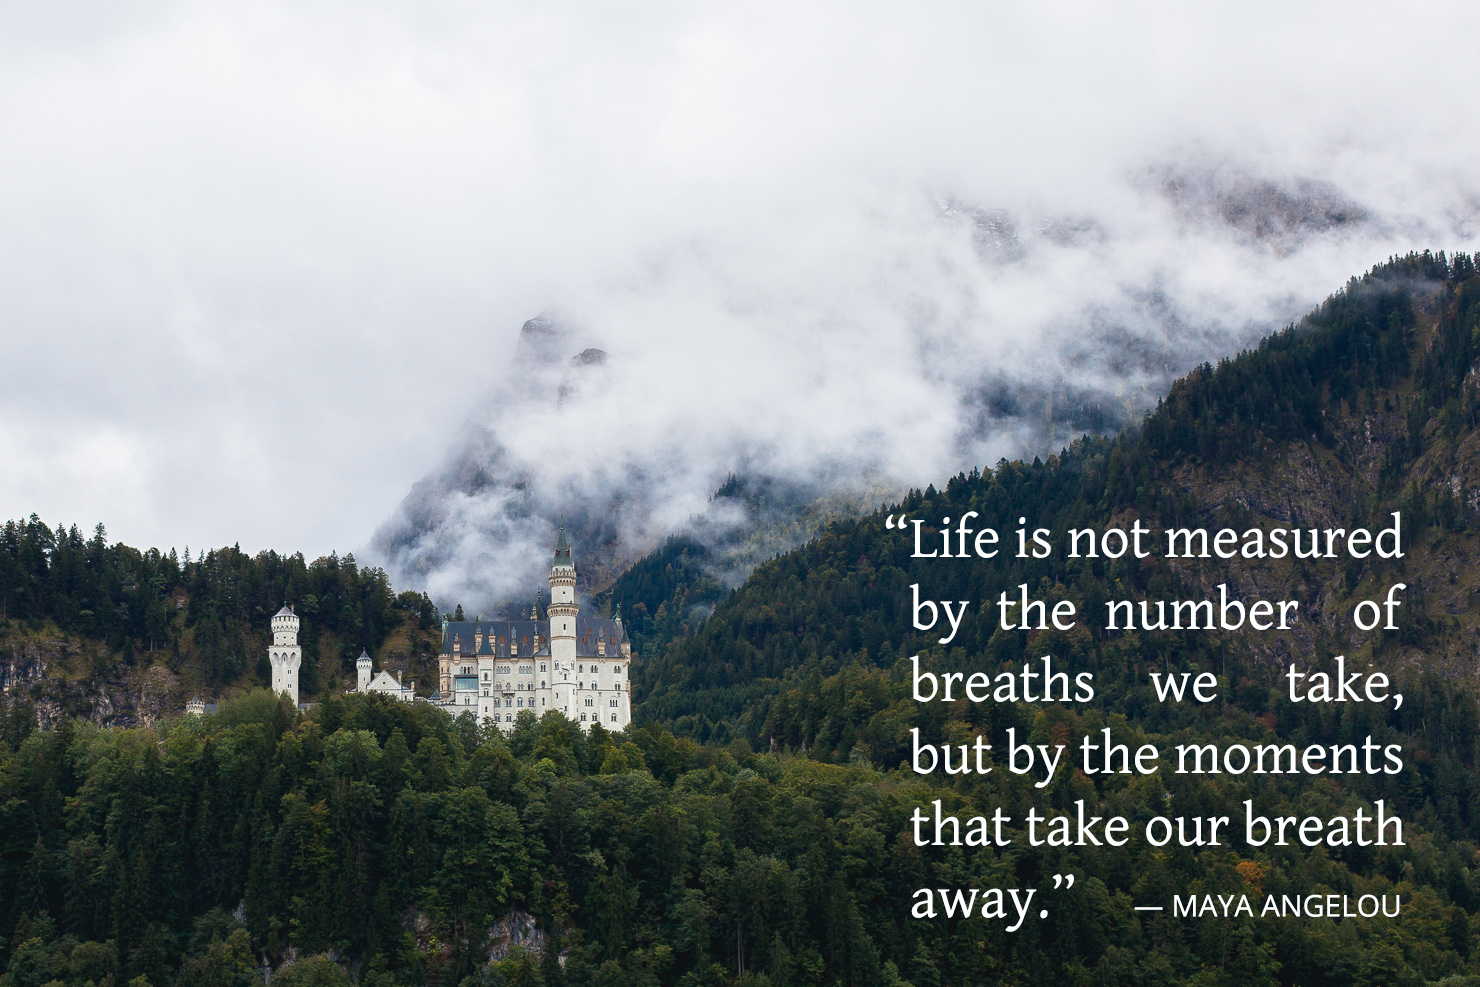 20 more travel quotes you probably haven't heard before ...